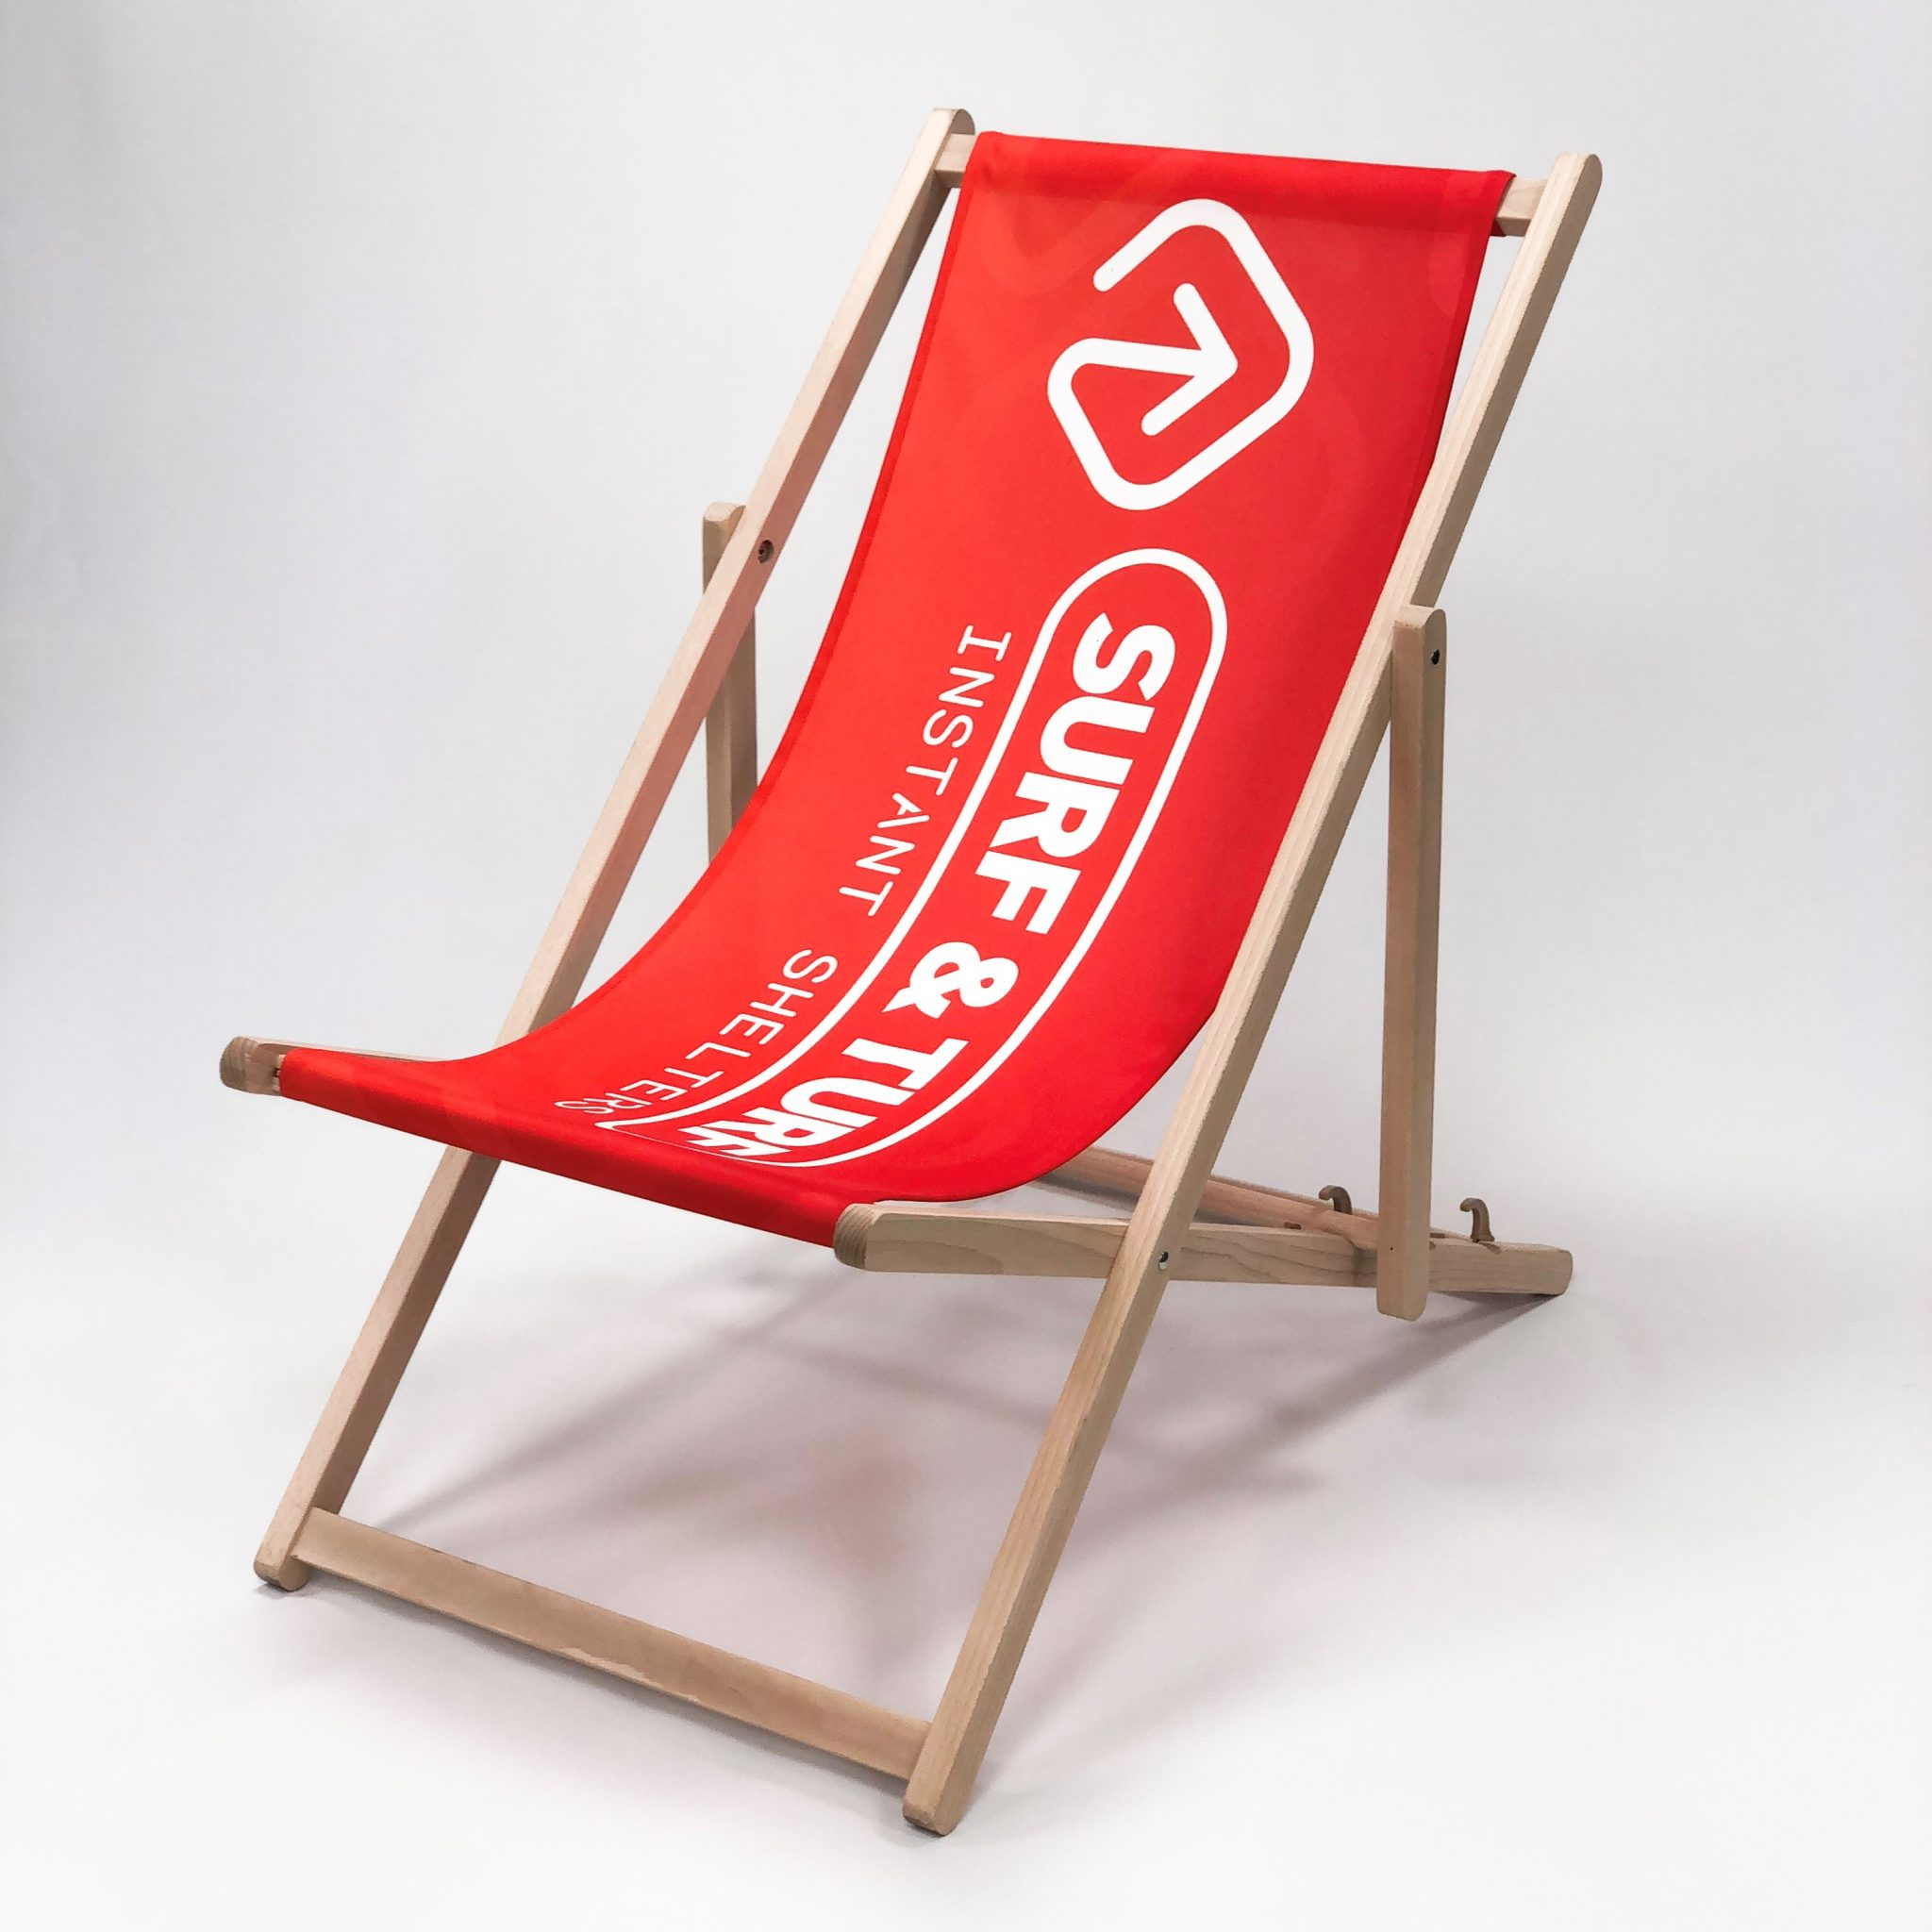 Branded Deck Chair